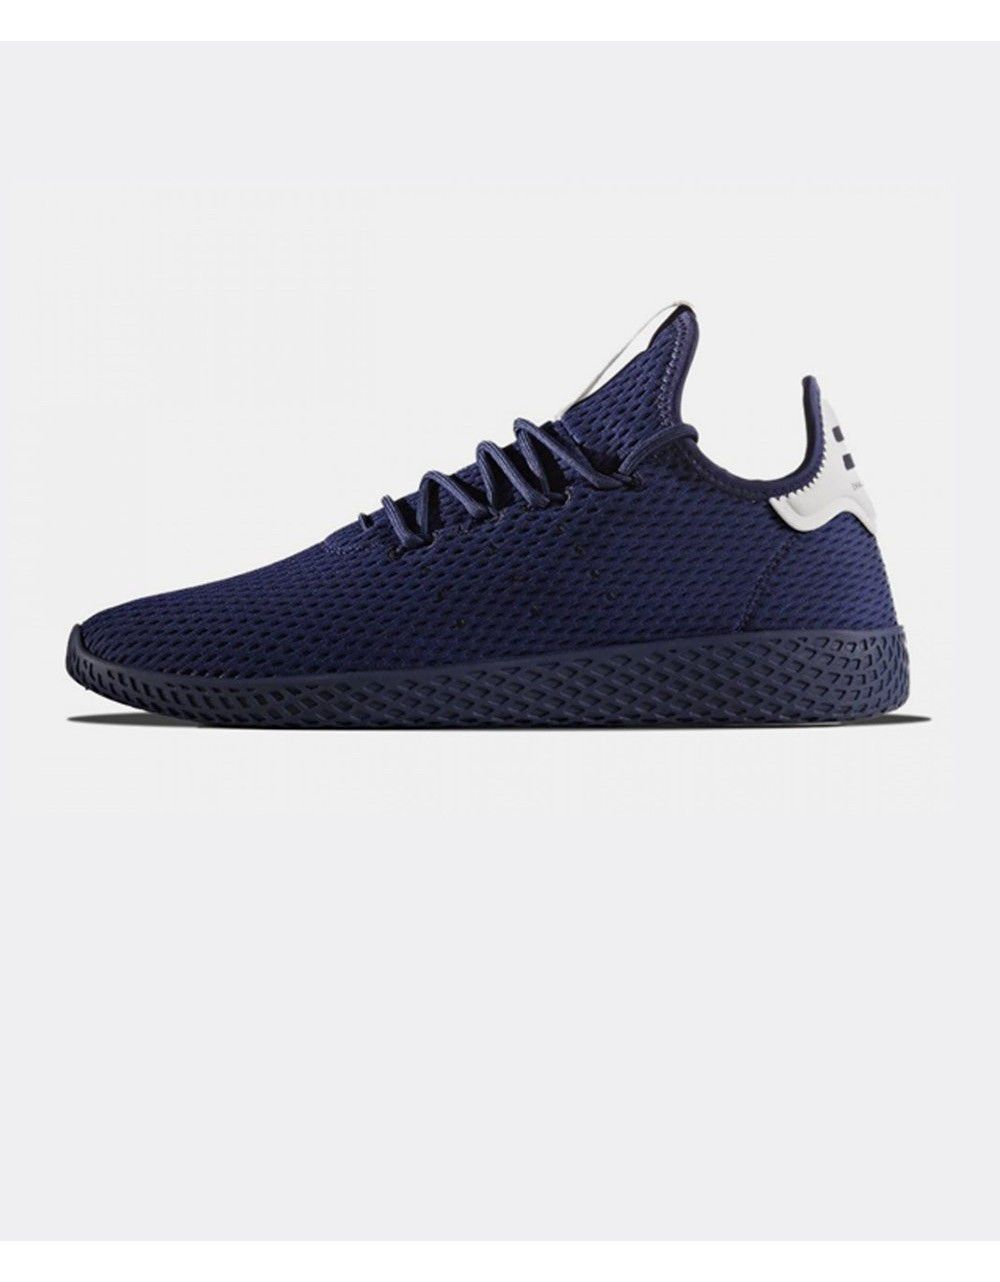 Adidas Pharrell Williams HU Blue Blue Training Shoes - Buy Adidas ... f57b37838